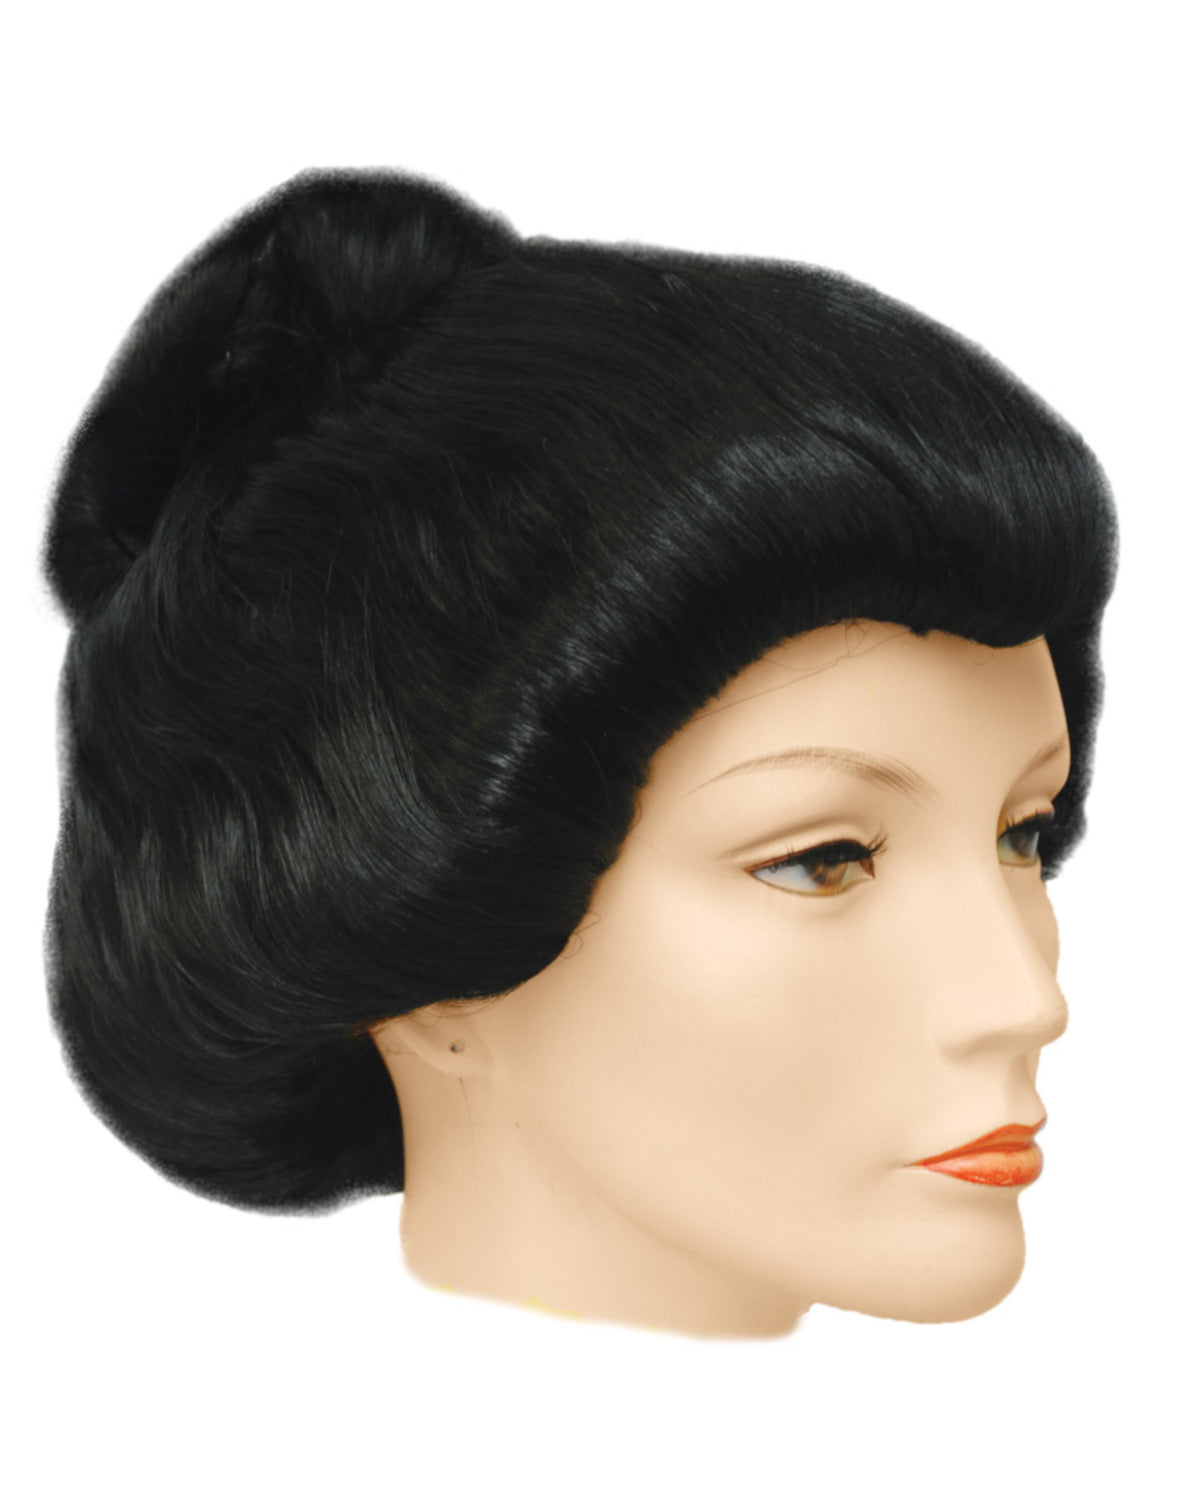 Better Version Geisha Girl Wig